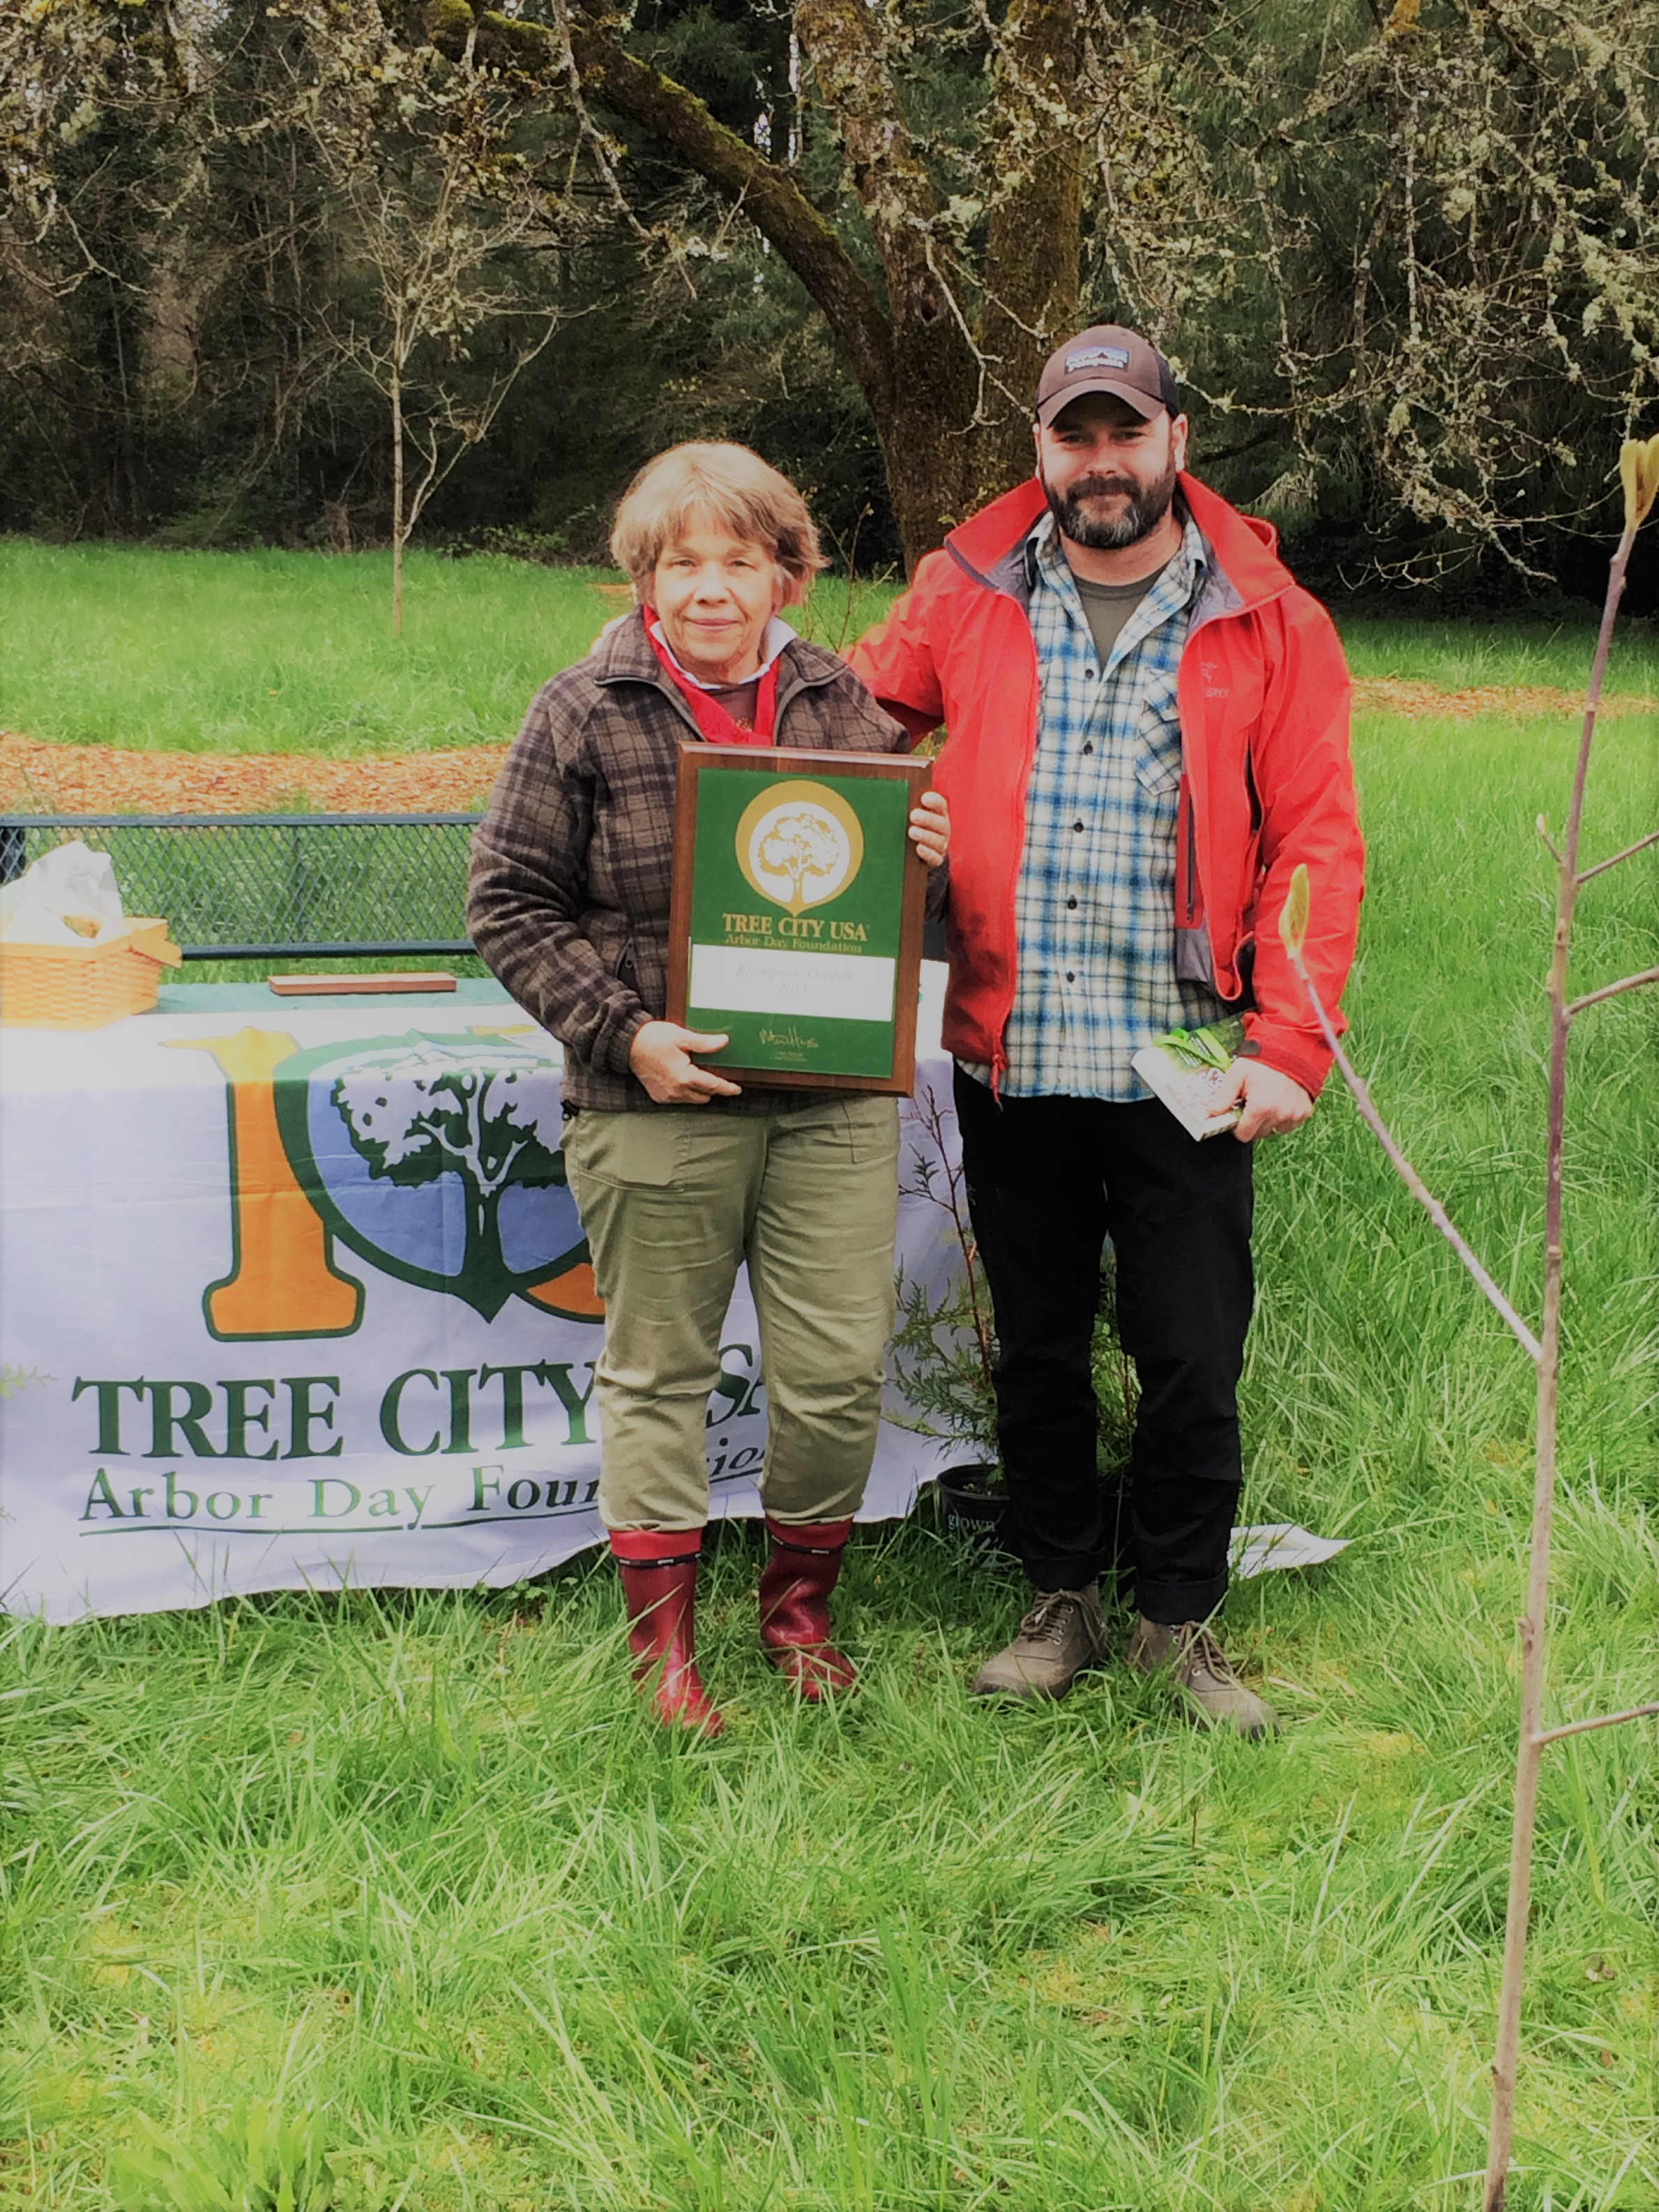 Mayor Heather Kibbey and City Arborist Brian French at the April 1, 2017 City of Rivergrove Arbor Celebration